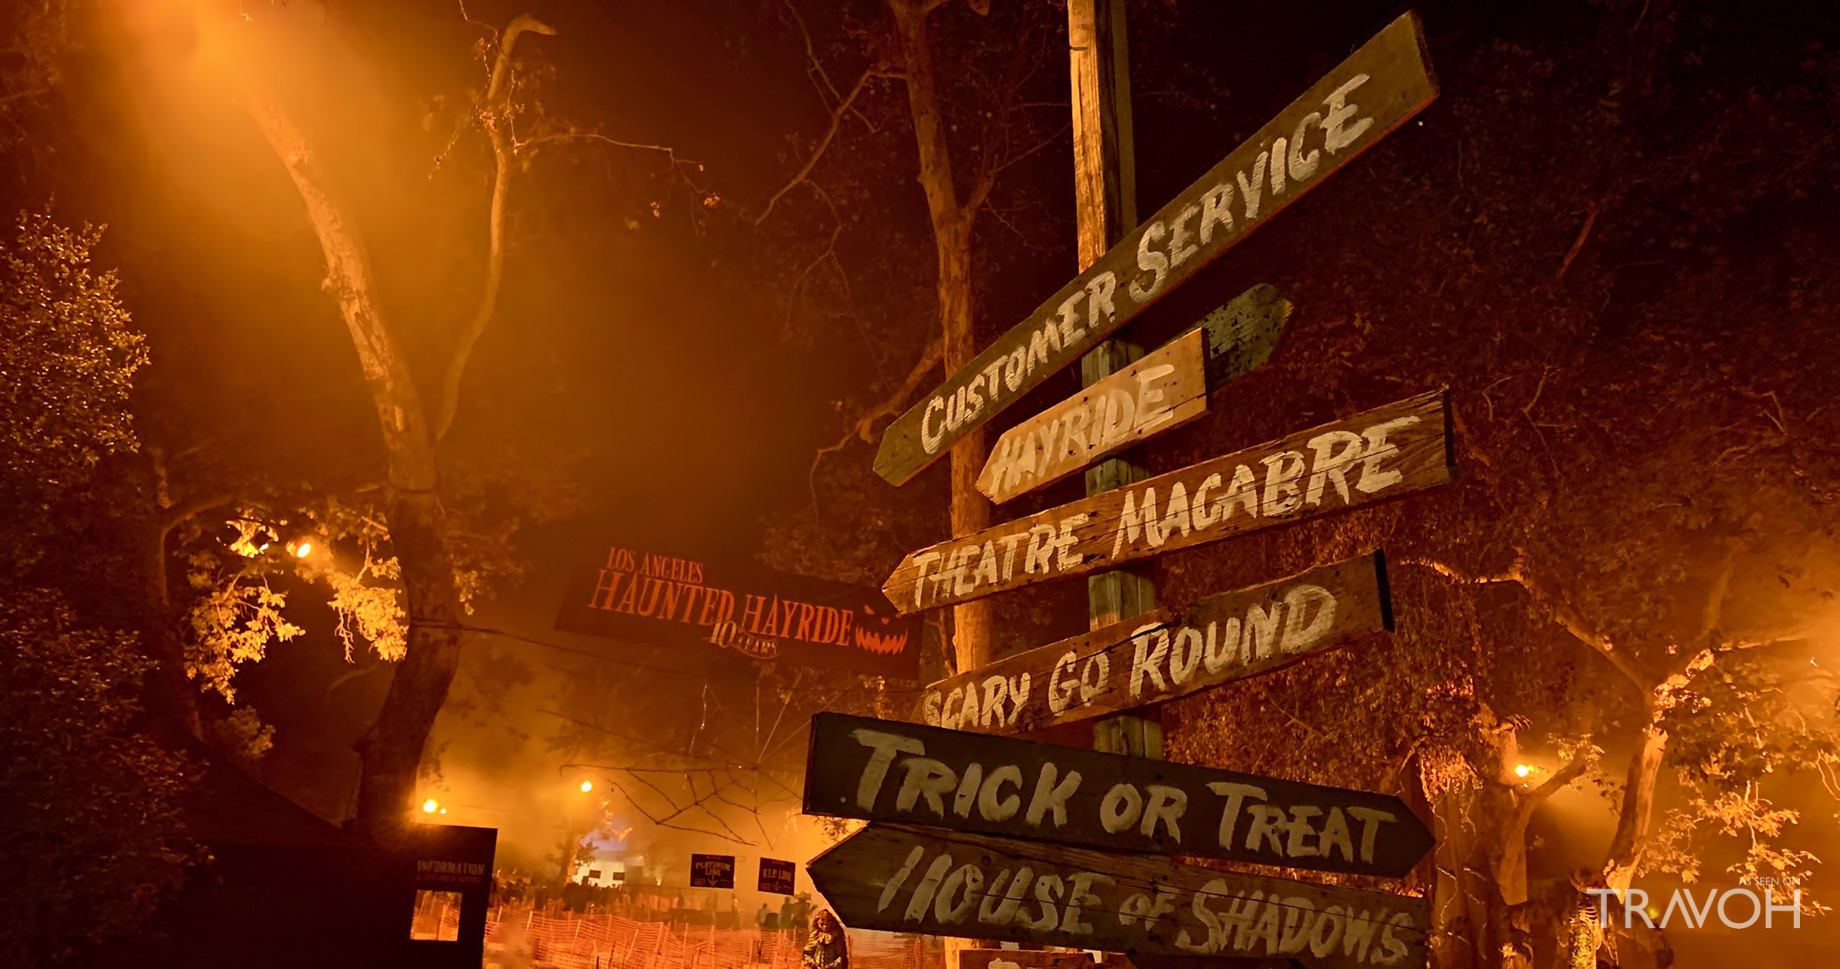 Los Angeles Haunted Hayride - 4730 Crystal Springs Dr, Los Angeles, CA, USA